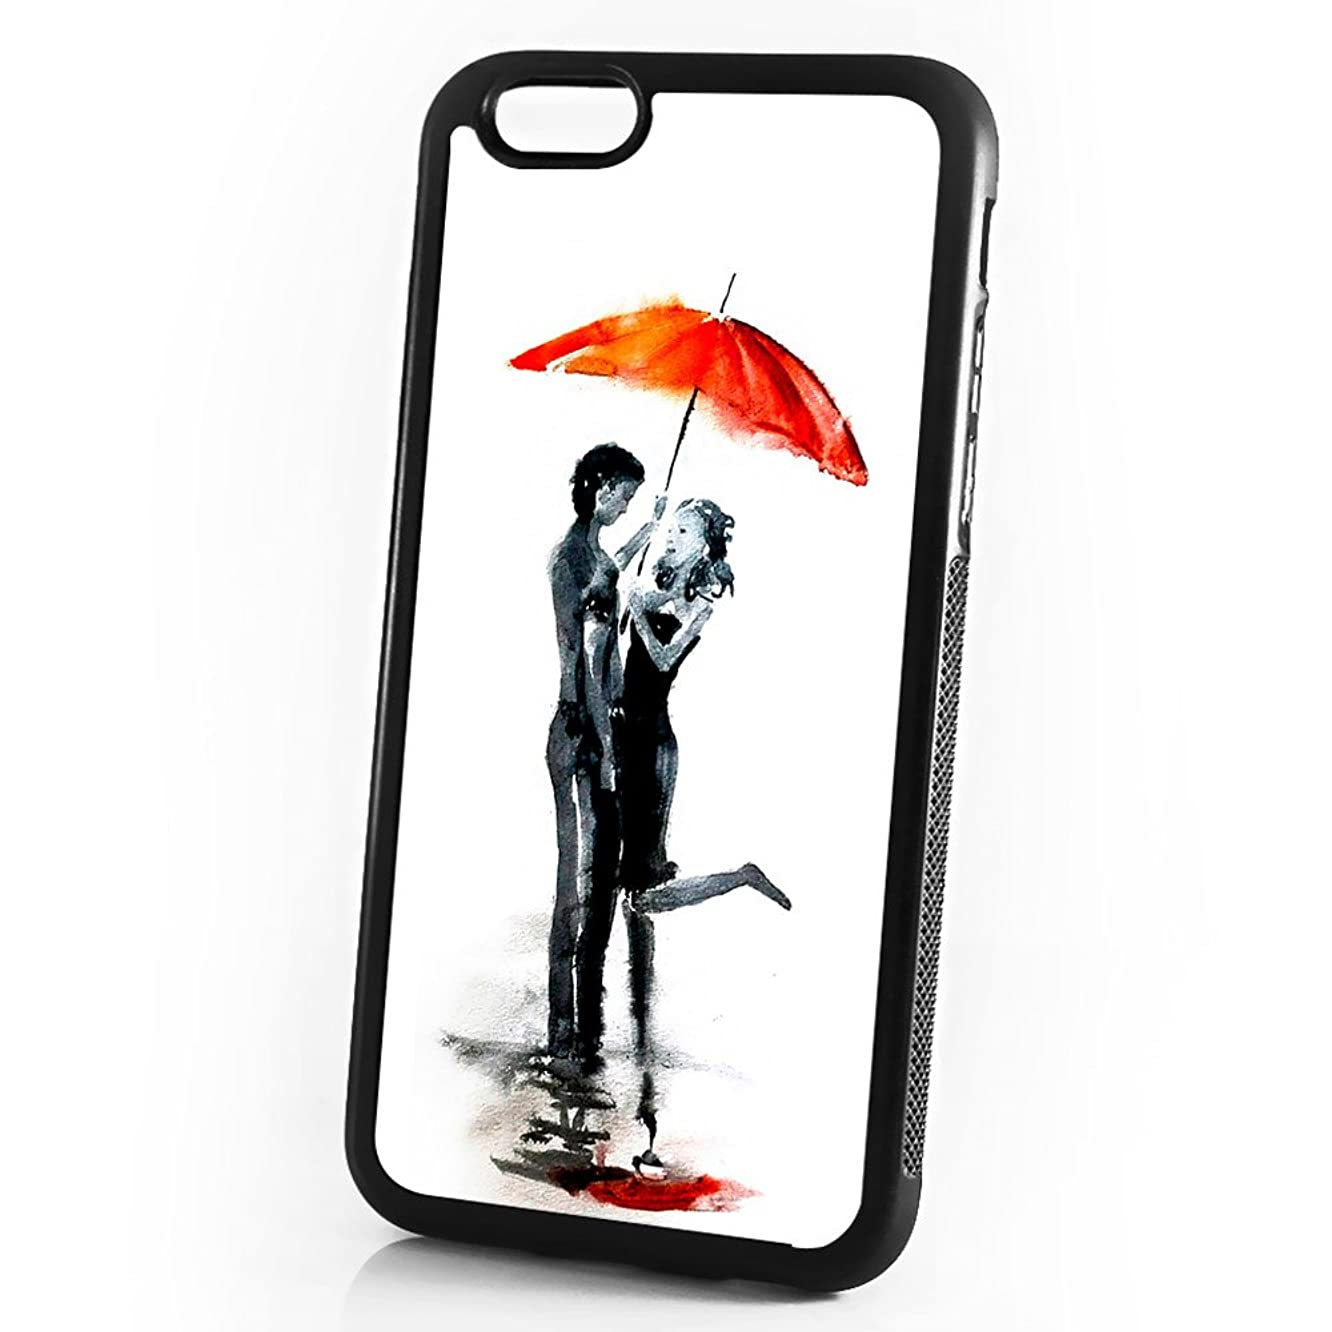 (for iPhone 6 / iPhone 6S) Shock Proof Soft Phone Case Cover Phone Case Back Cover - HOT10145 Lover Red Umbrella